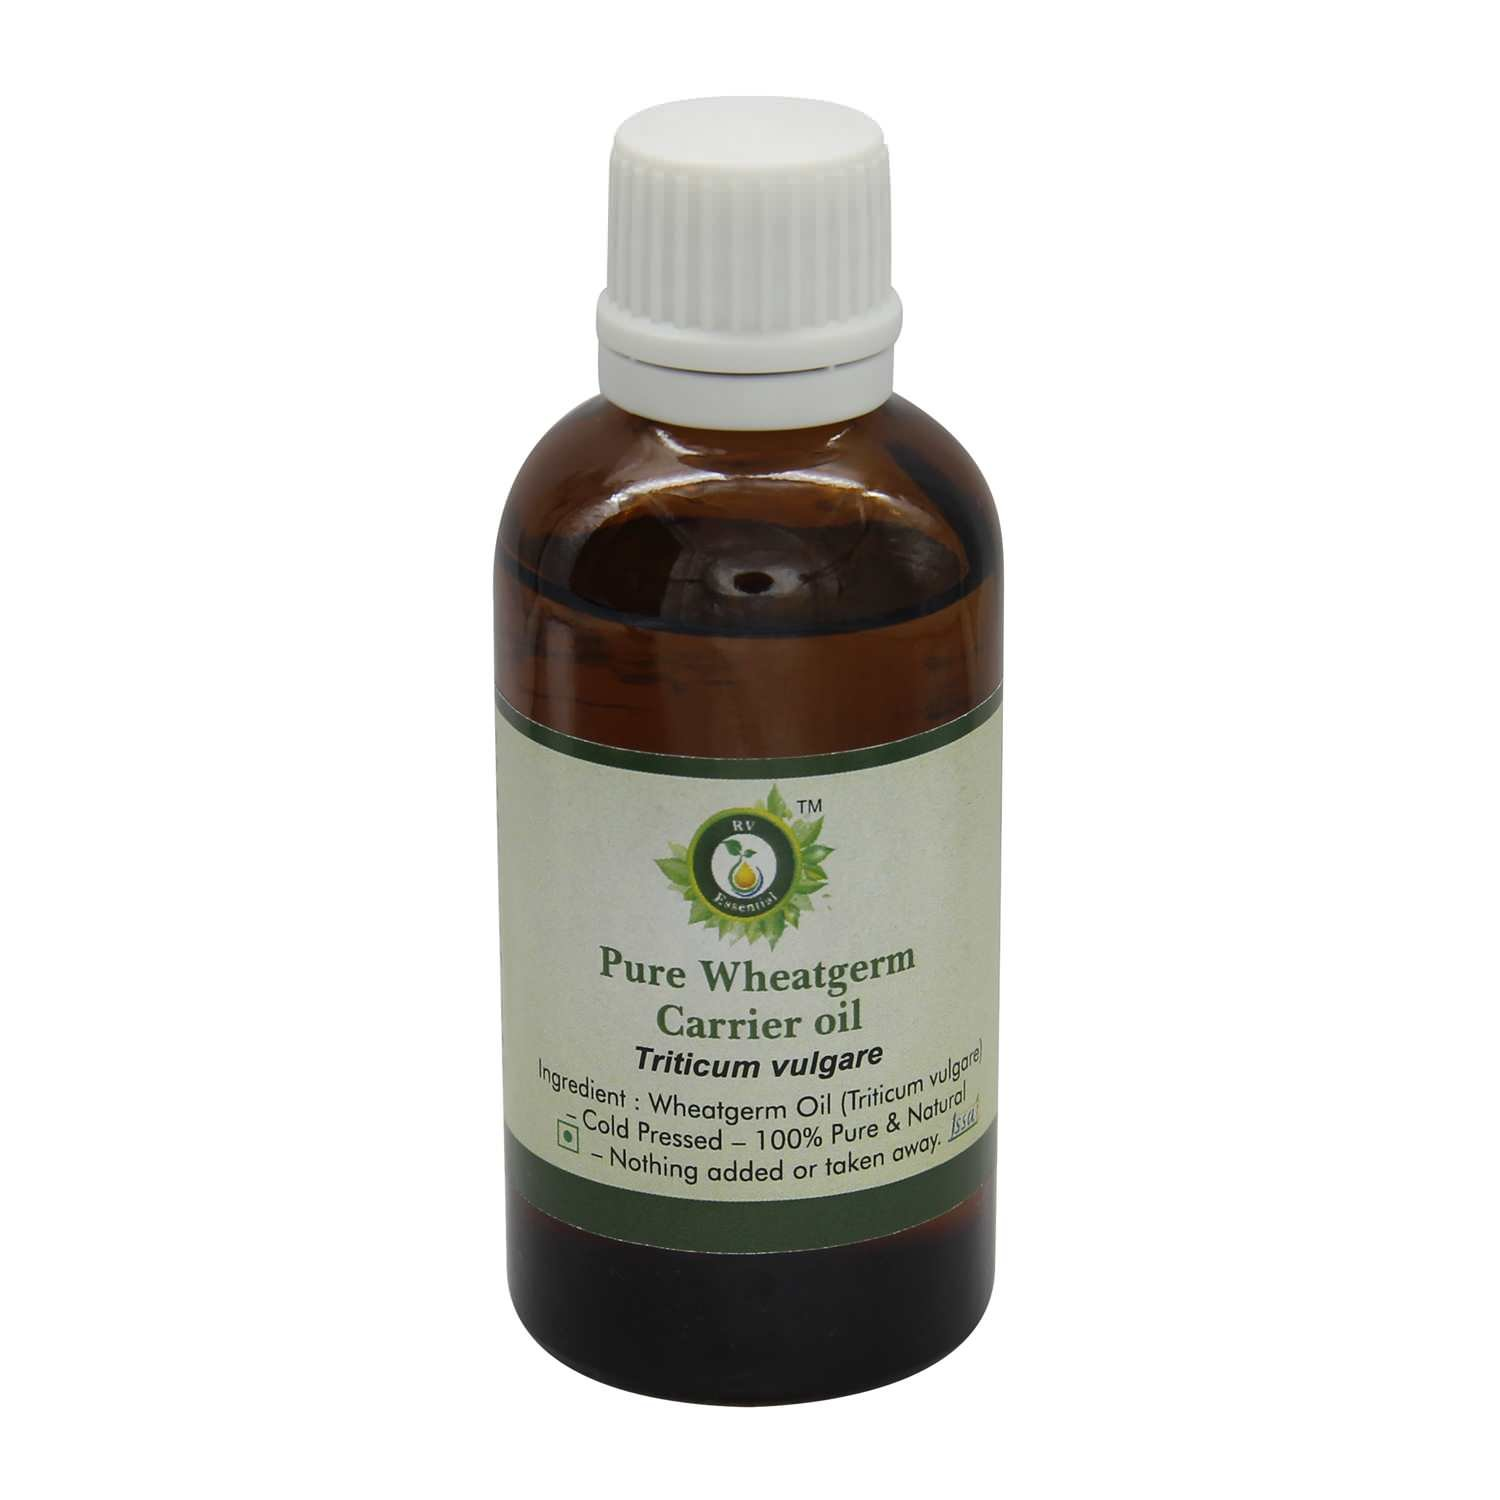 Wheatgerm Oil | Triticum Vulgare | For Hair | For Face | 100% Pure Natural | Cold Pressed Wheatgerm Oil | Wheatgerm Carrier Oil | 630ml | 21oz By R V Essential